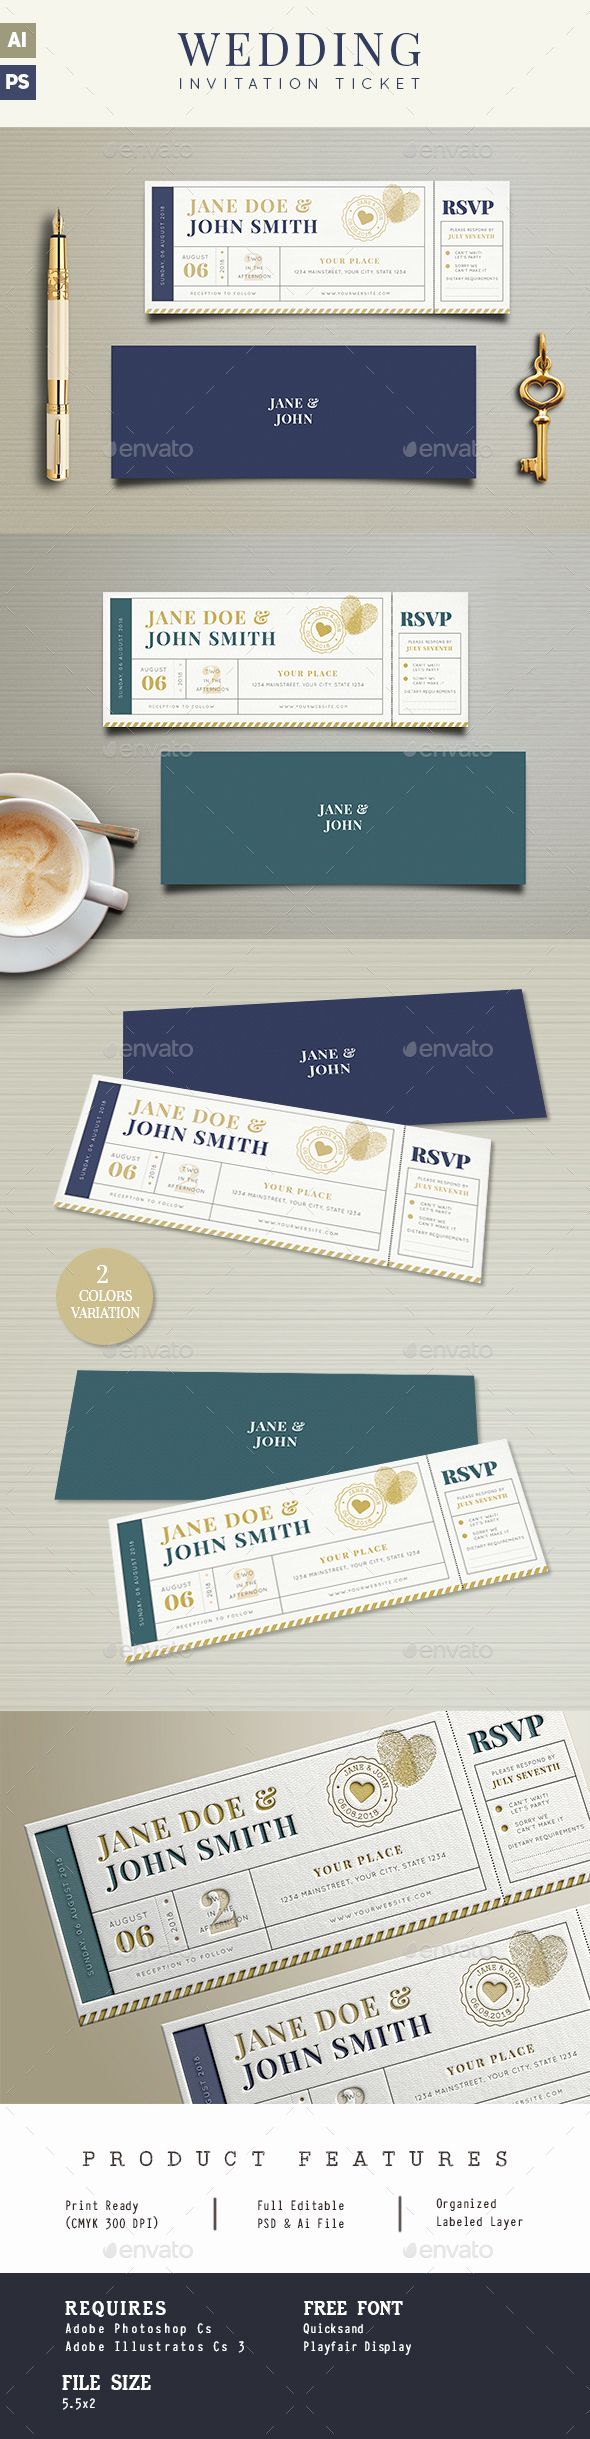 standard size wedding invitation%0A Wedding Invitation Ticket